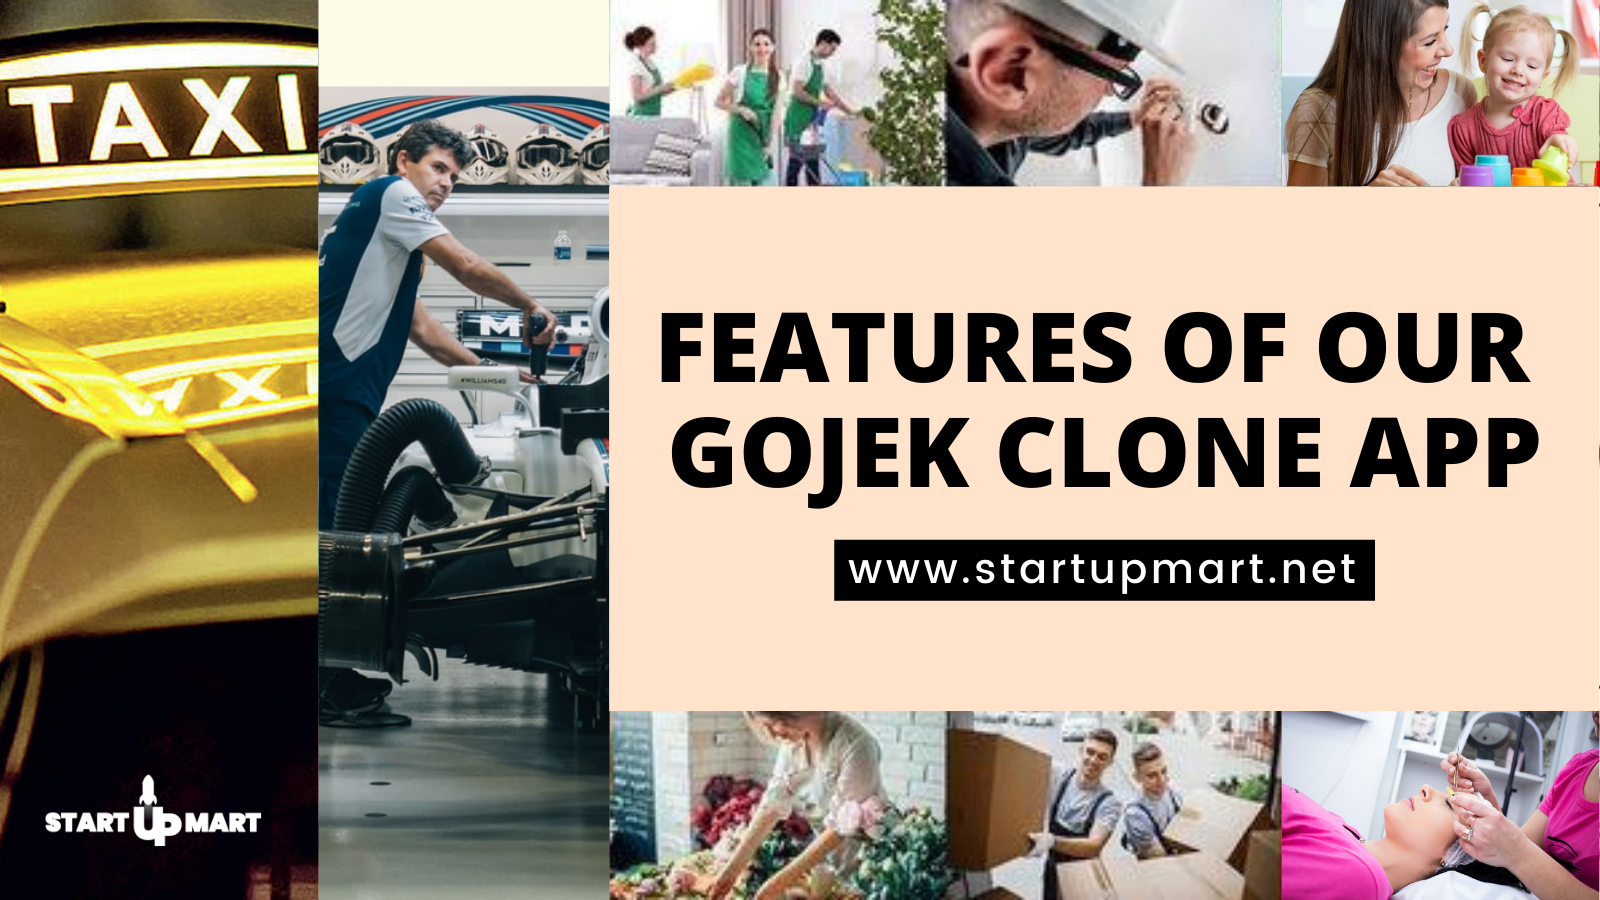 Features of Our Gojek Clone App